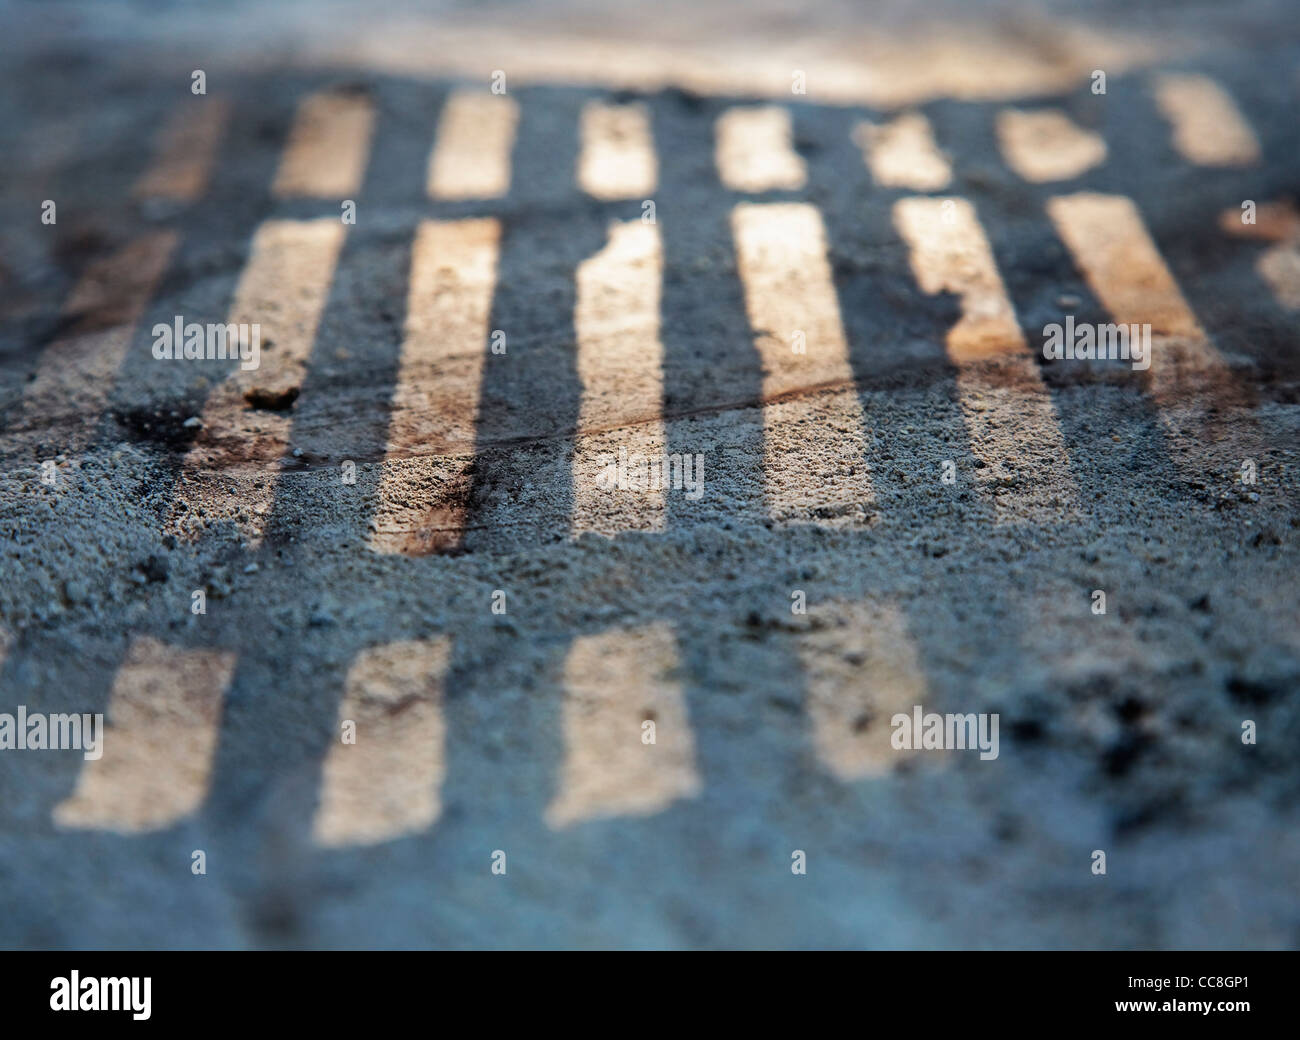 abstract detail of grill shadow on coal powder - Stock Image